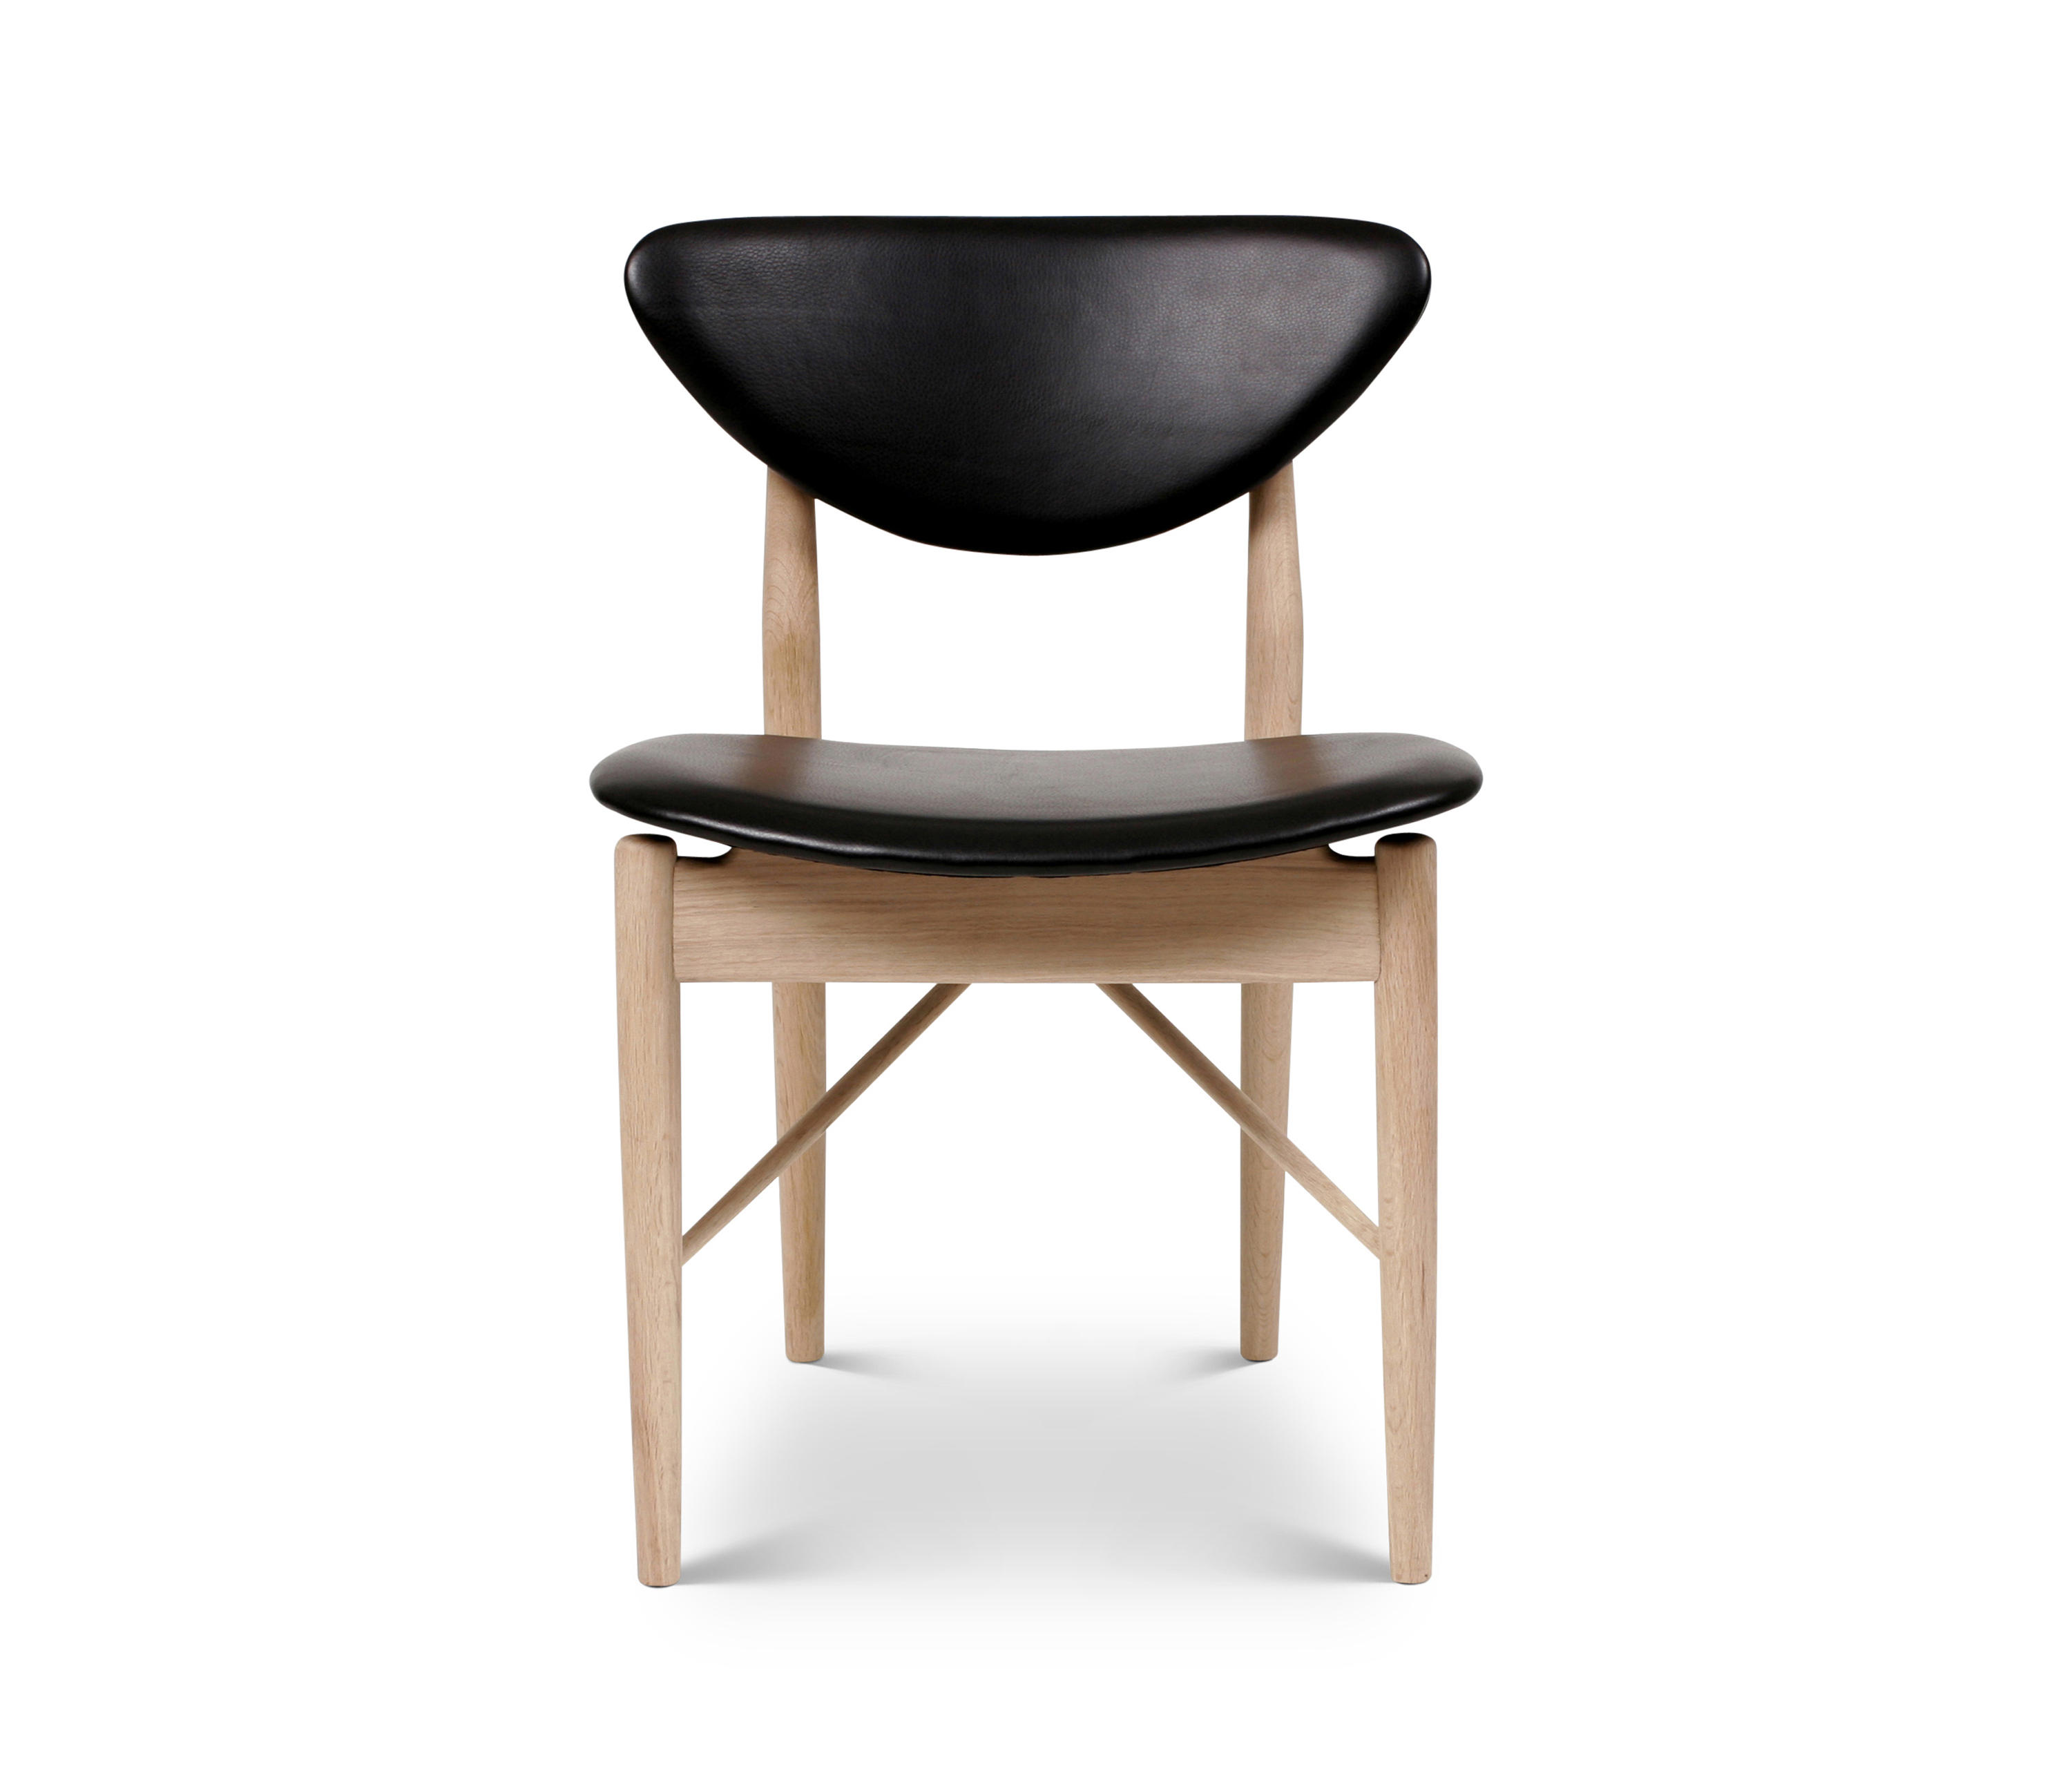 108 Dining Chair By House Of Finn Juhl   Onecollection | Chairs ...